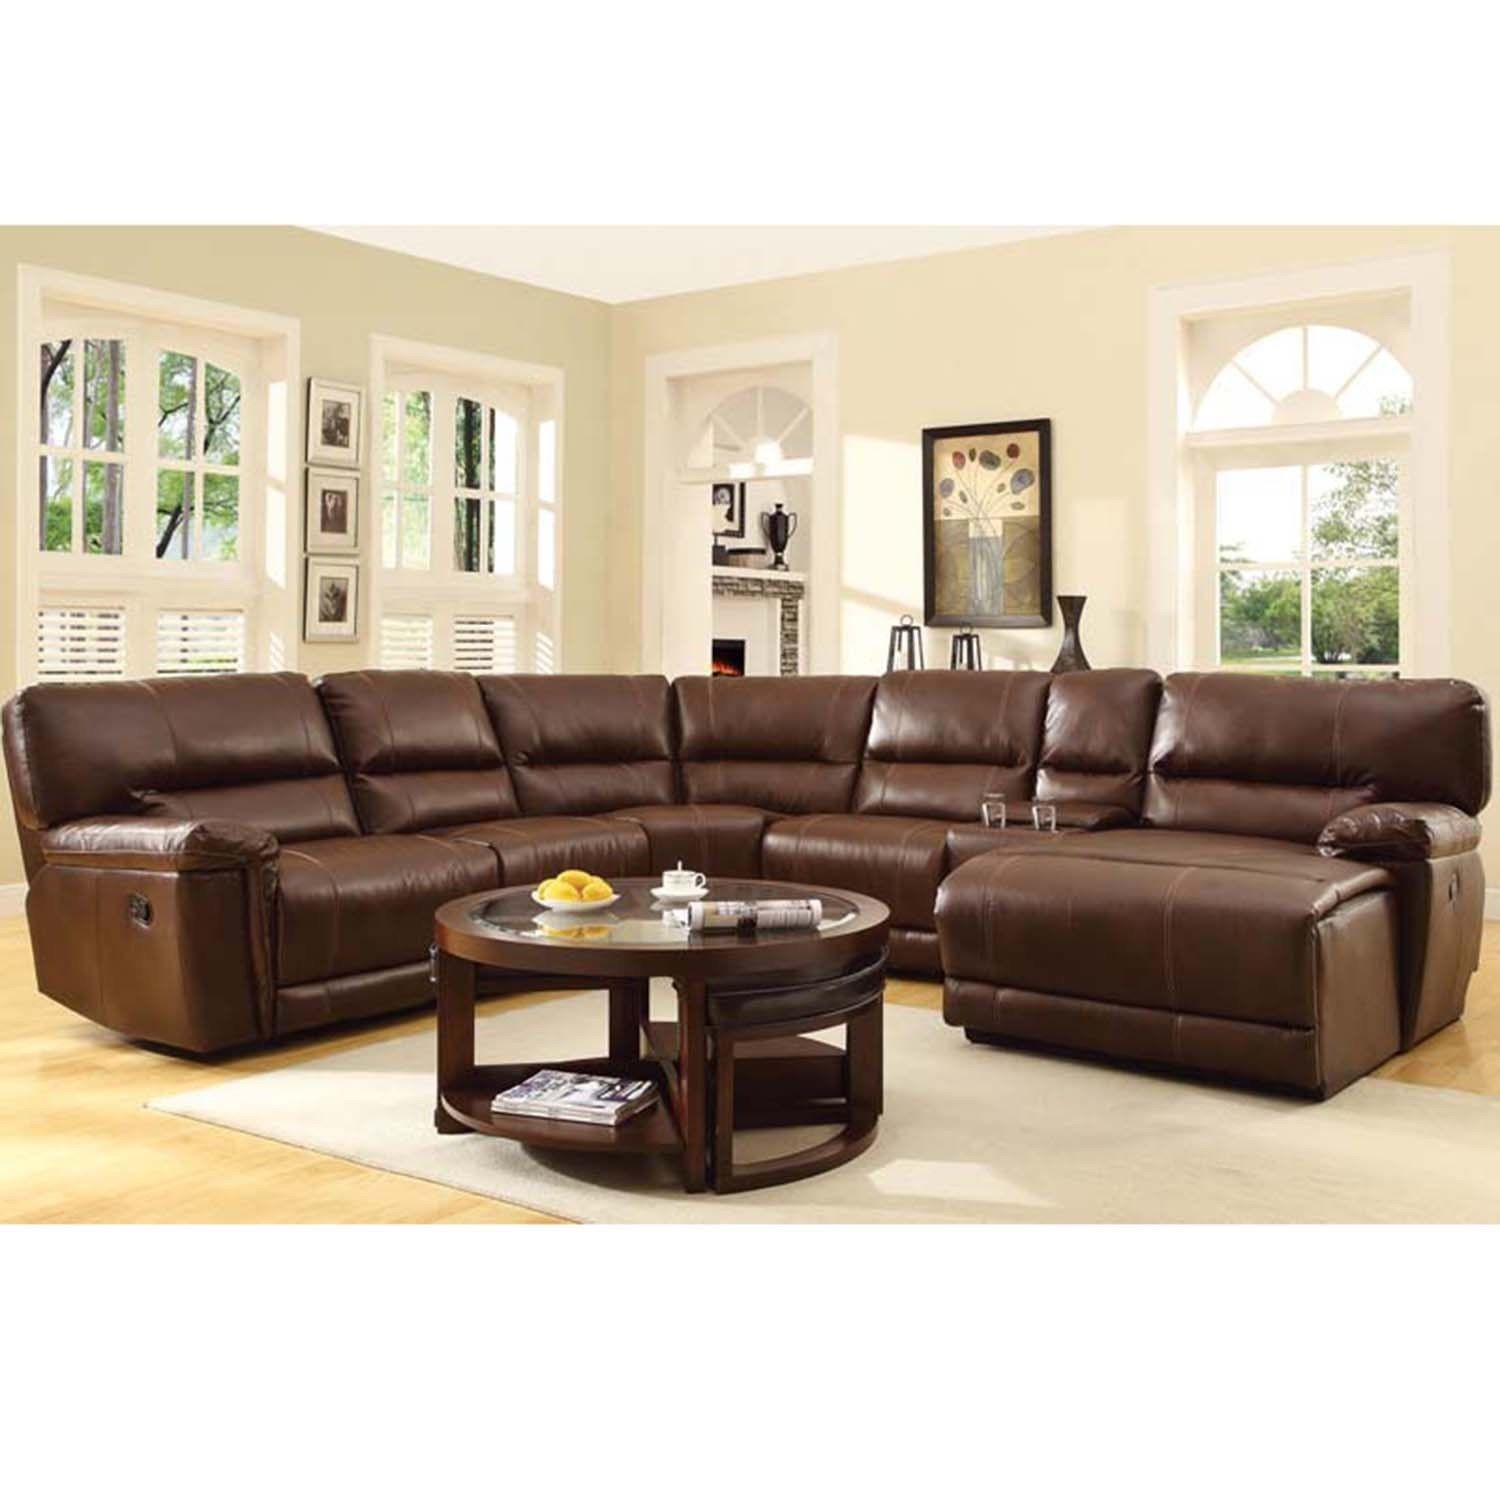 Leather Sectional Sofa Recliner Hardy Bonded Leather Reclining Sectional With Chaise Overstock